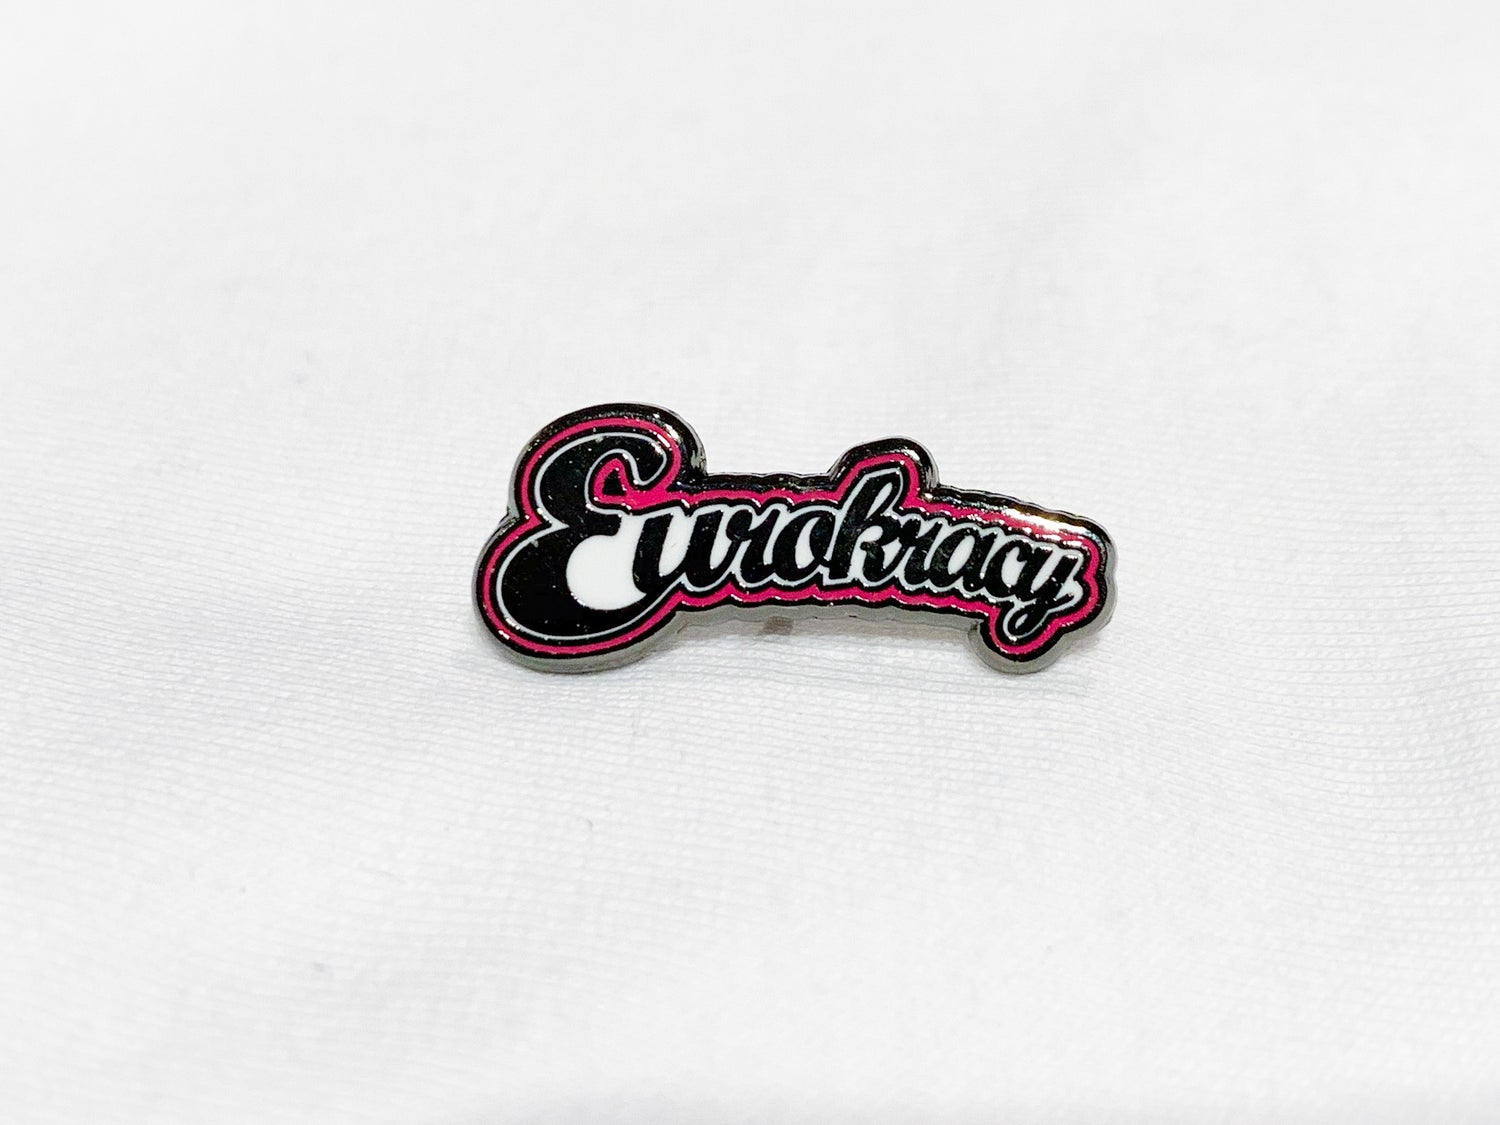 Image of Eurokracy Hard Enamel Pin